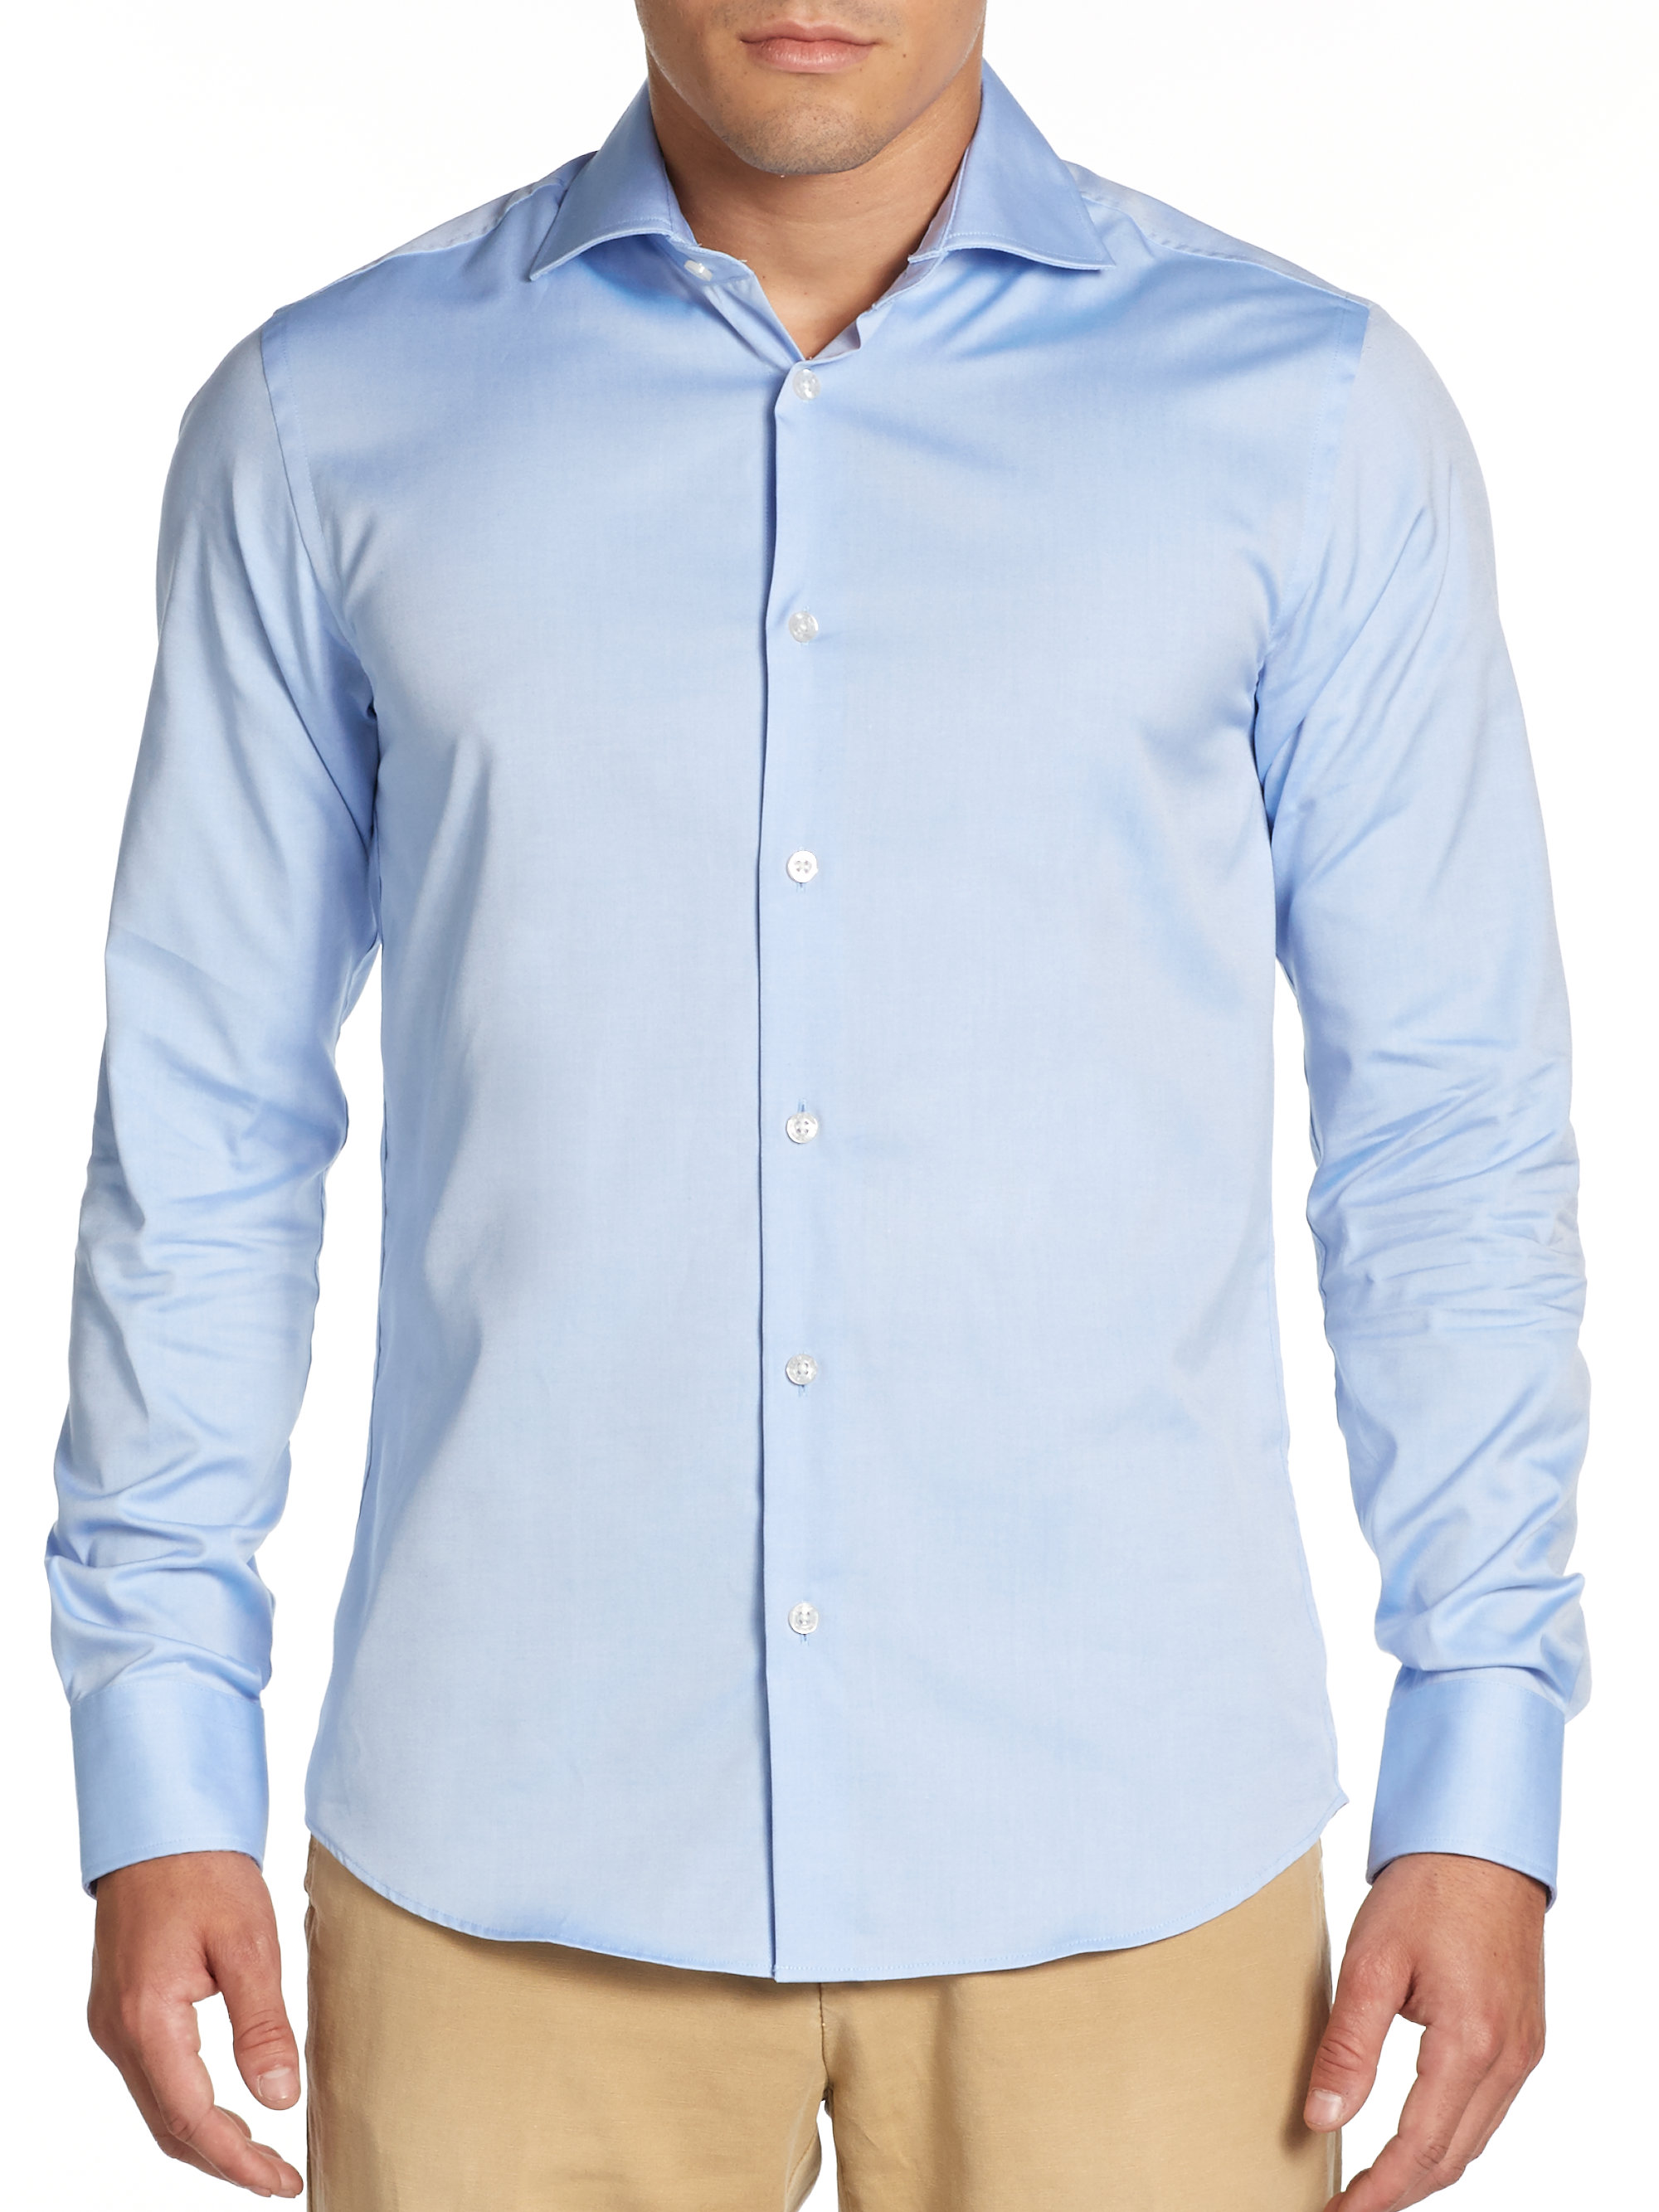 Scotch & soda Woven Cotton Dress Shirt in Blue for Men | Lyst